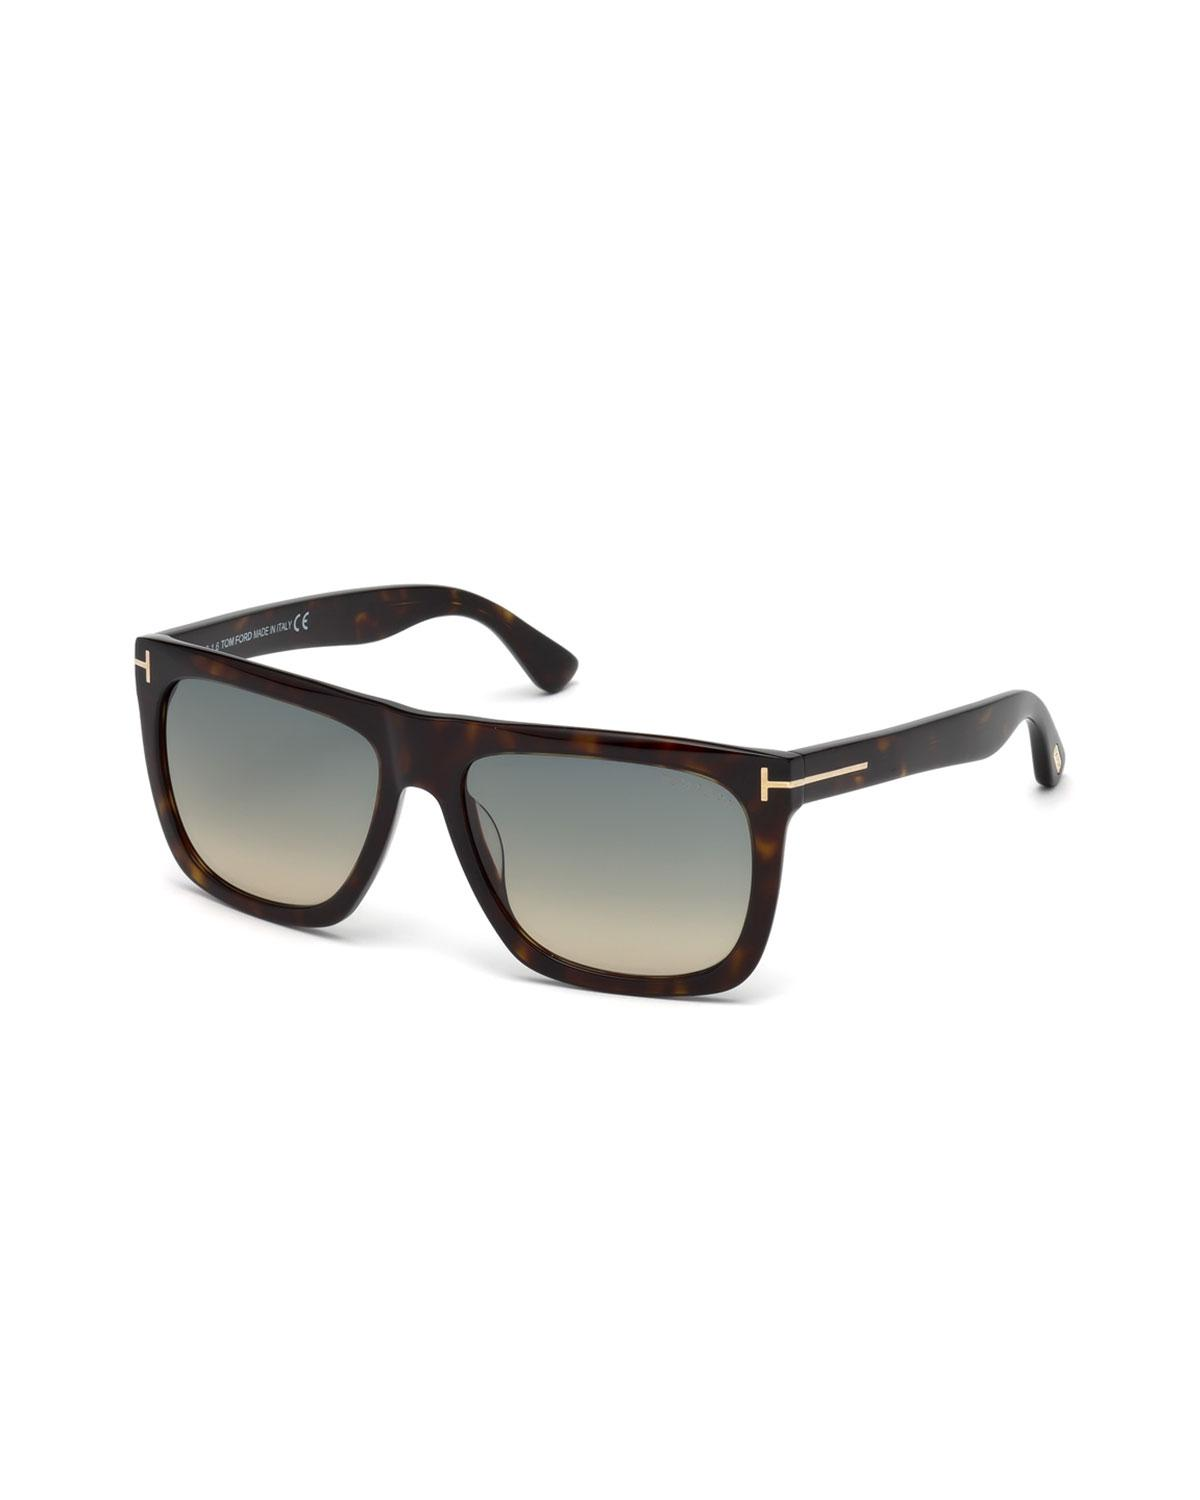 cefe36c0fe Lyst - Tom Ford Morgan Thick Square Acetate Sunglasses for Men